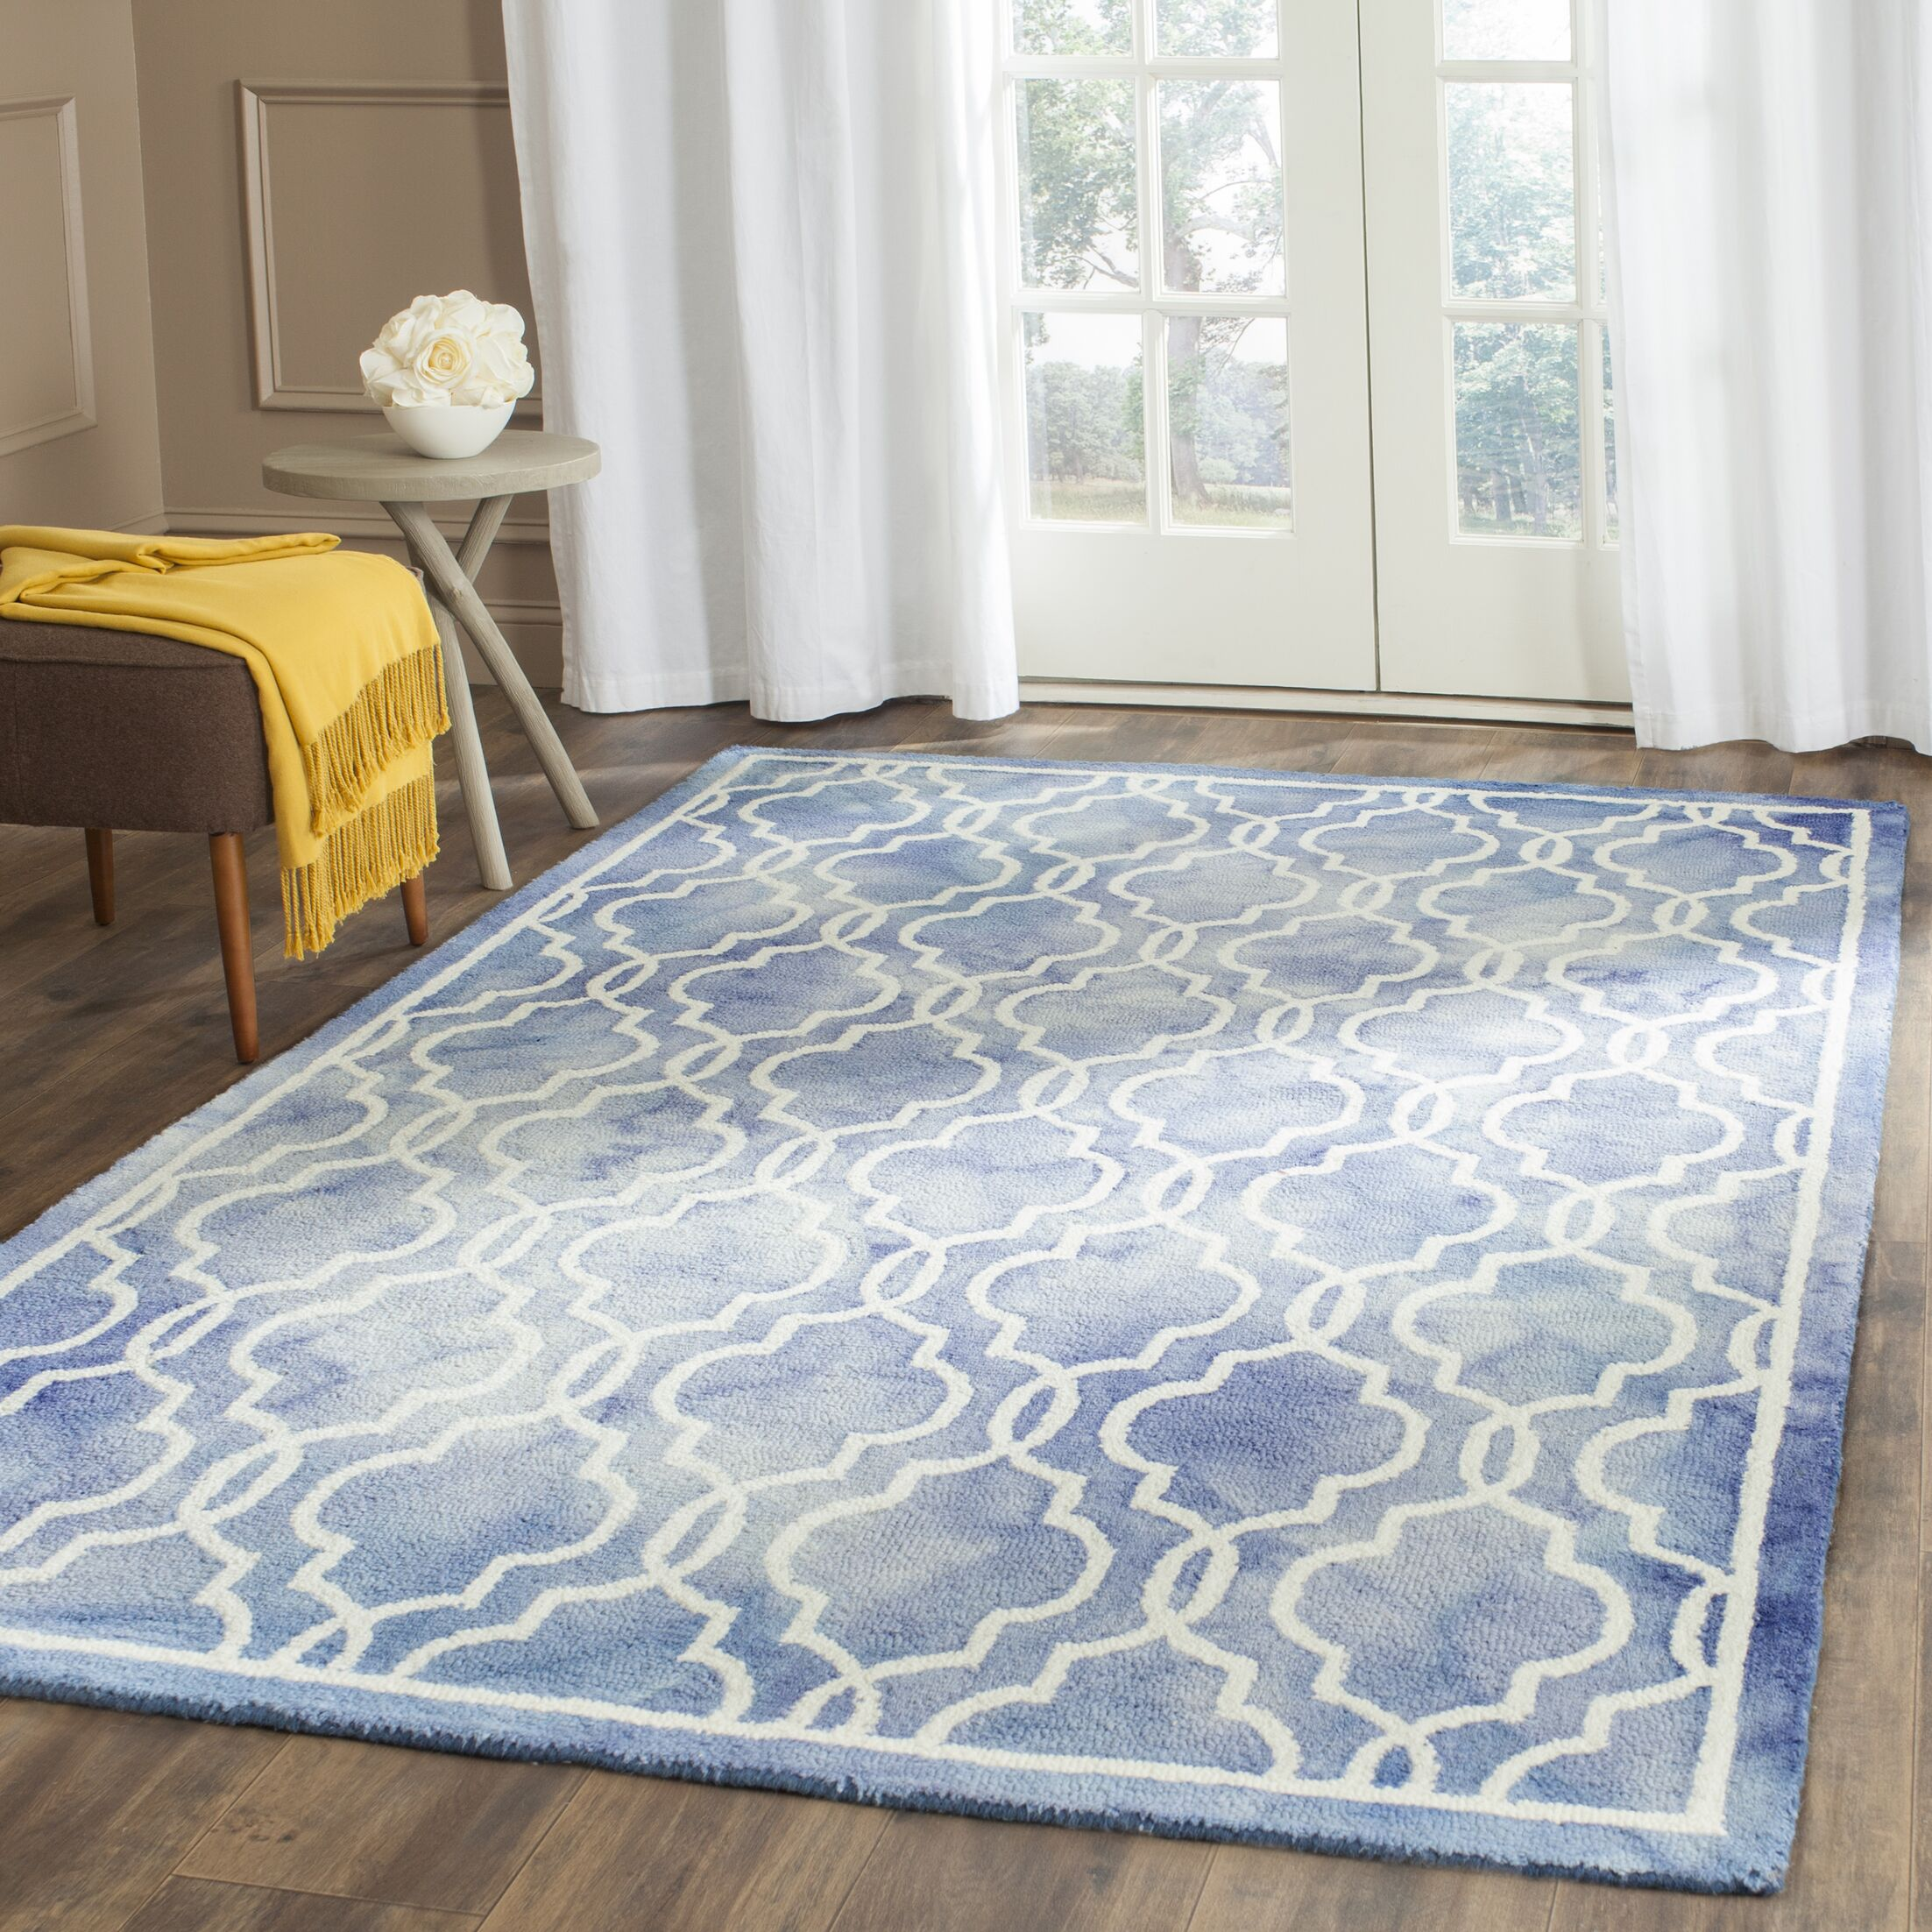 Arlene Hand-Tufted Area Rug Rug Size: Rectangle 6' x 9'